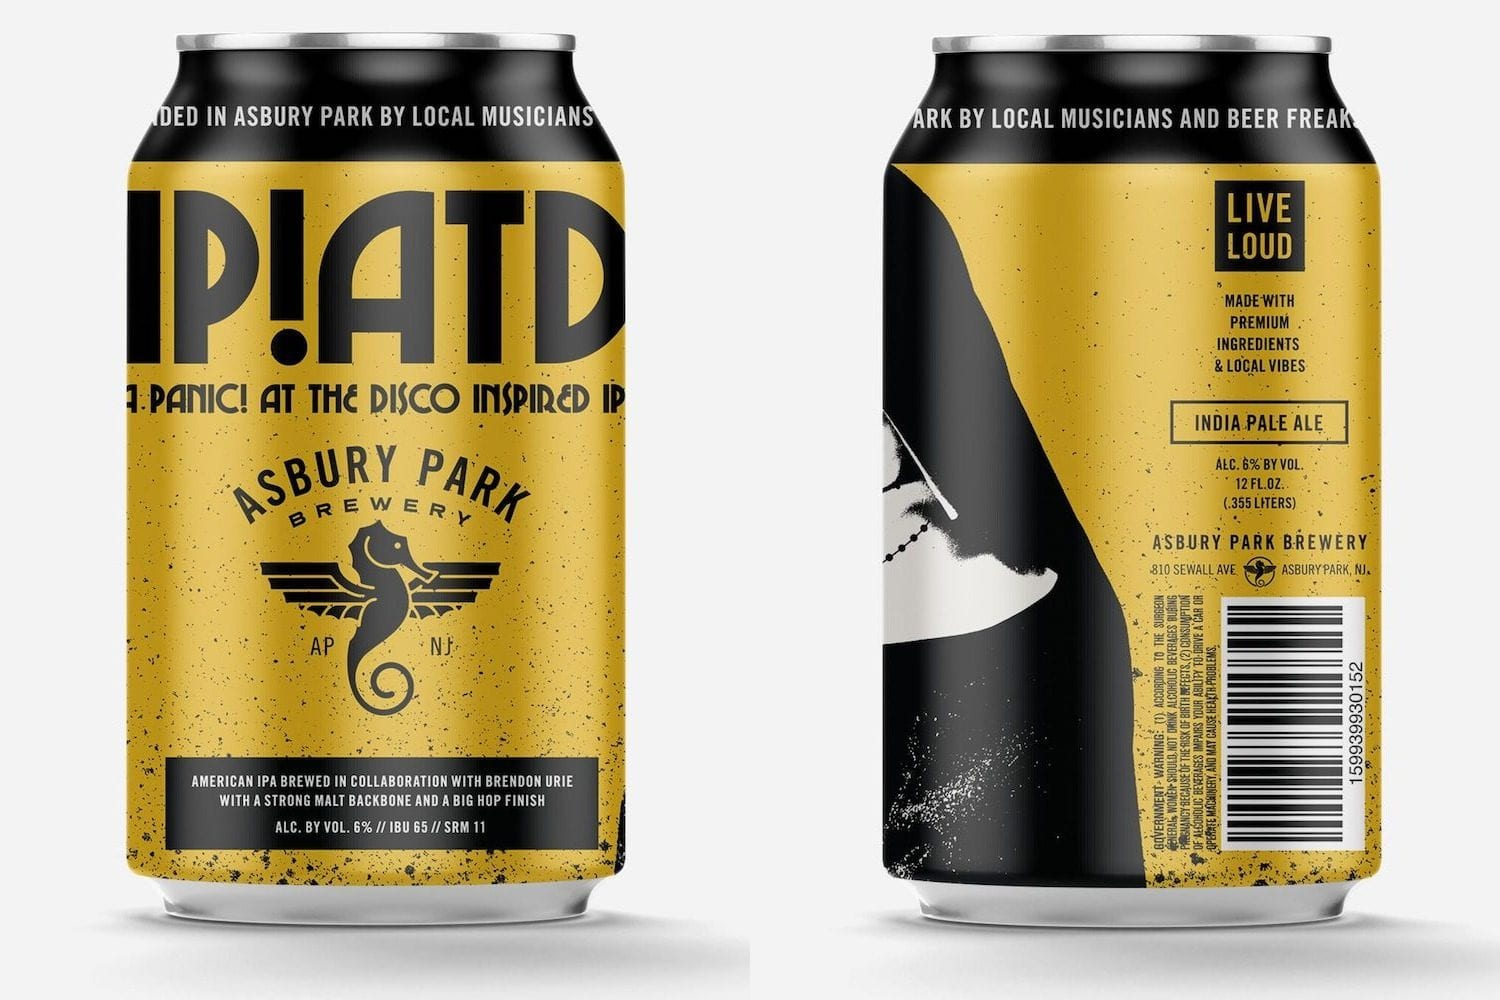 panic at the disco beer ipatd